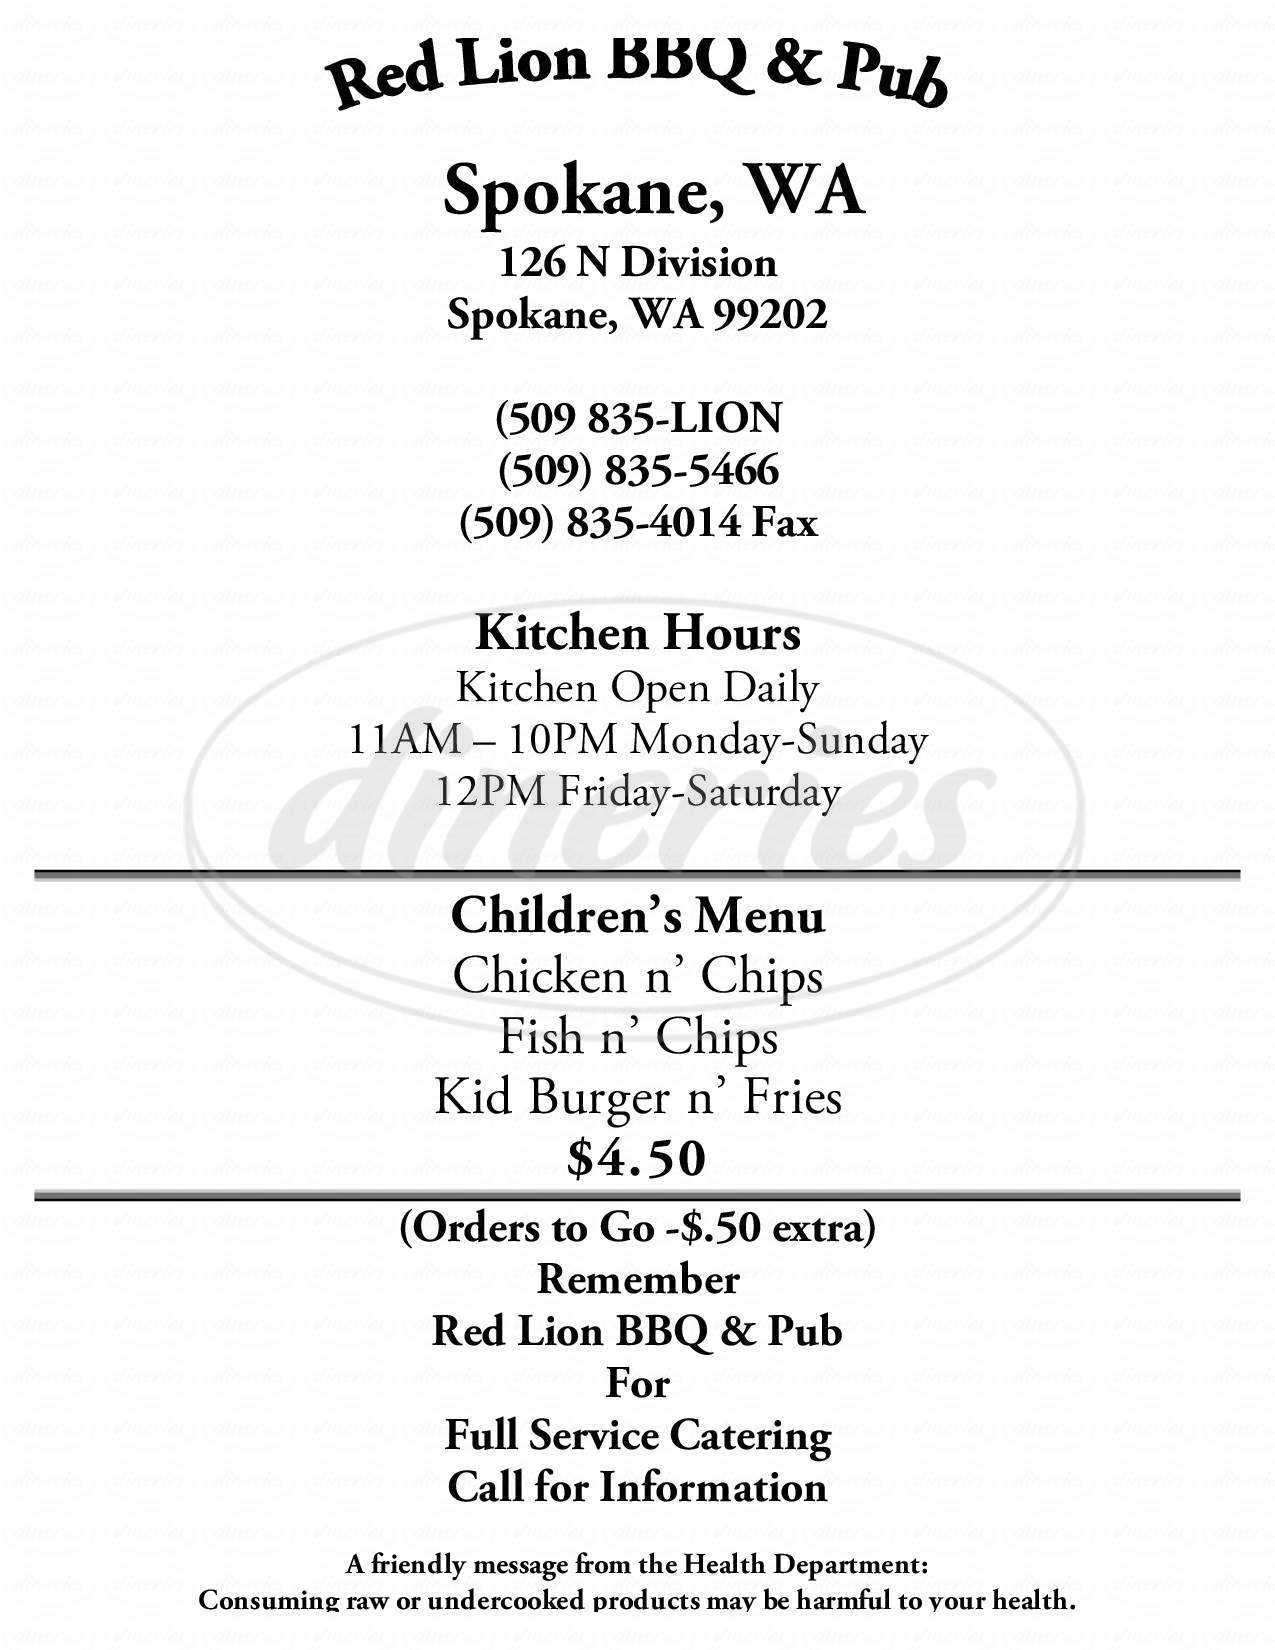 menu for Red Lion BBQ & Pub